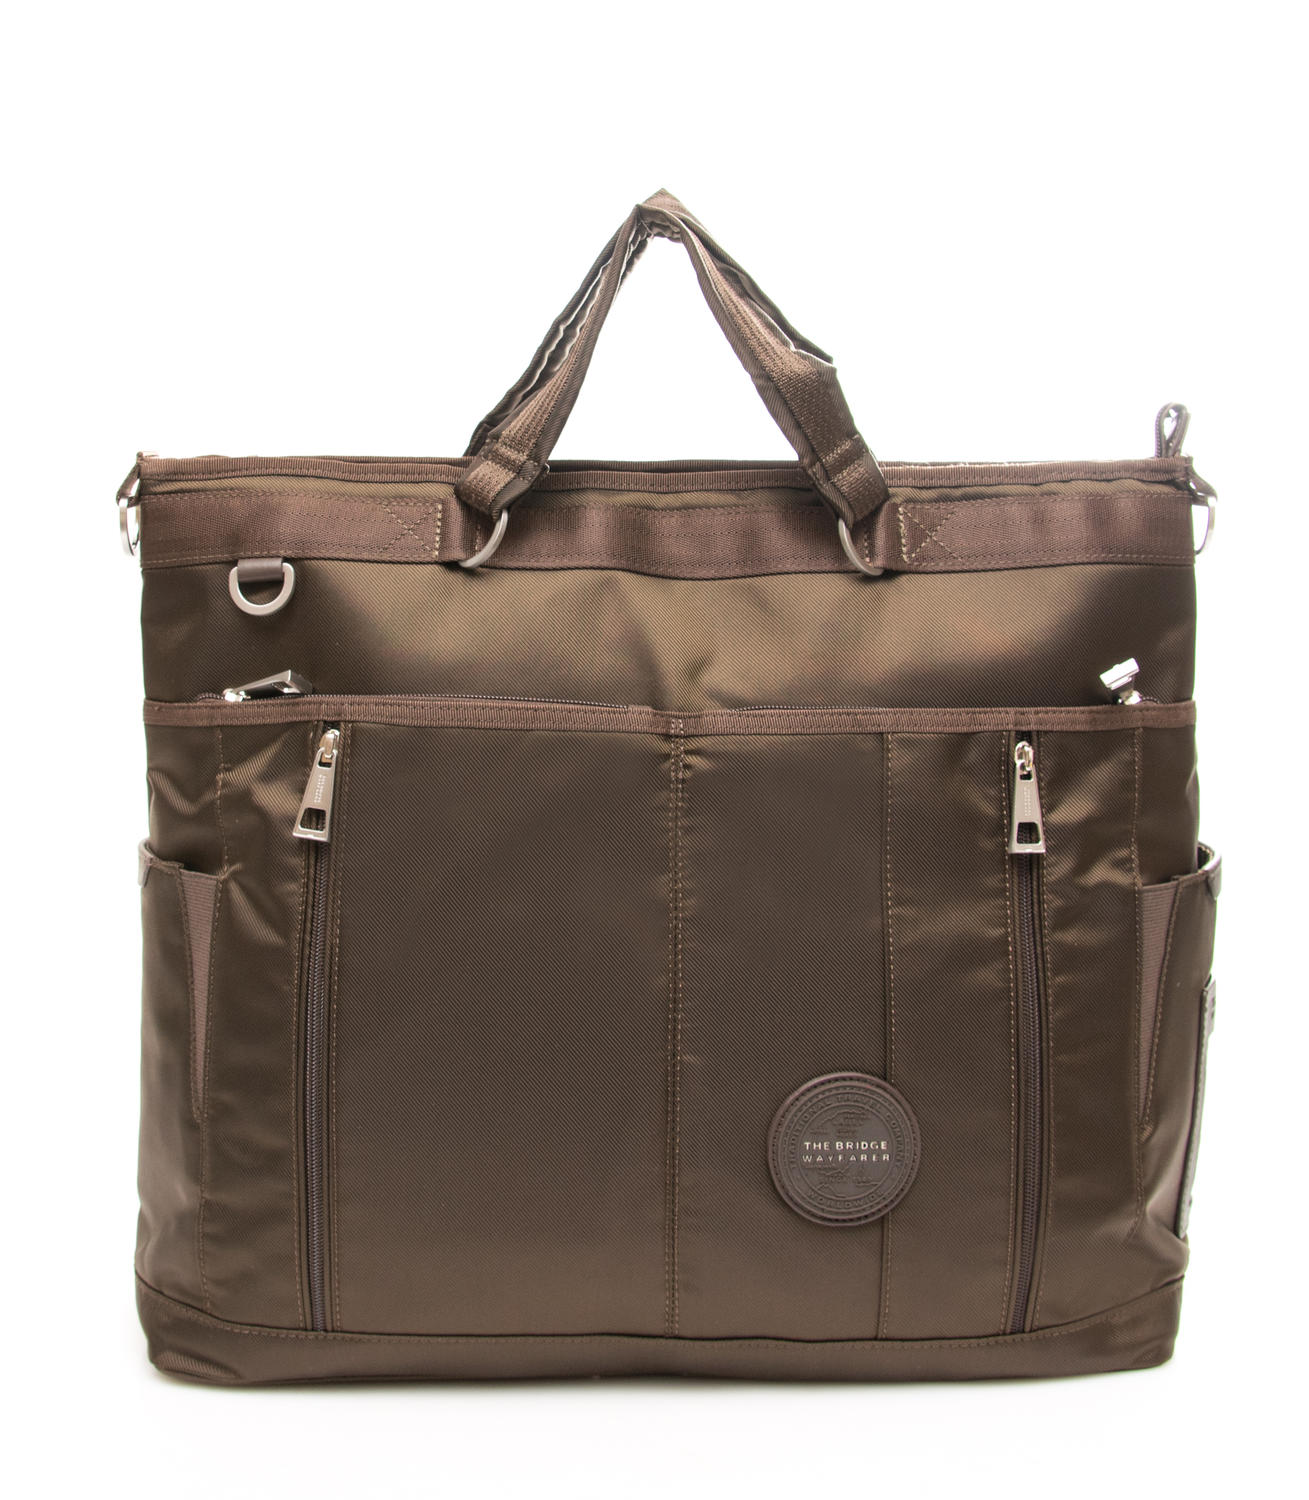 9bc260026c The Bridge Wayfarer Crew Borsa A Mano, Con Tracolla Darkbrown ...